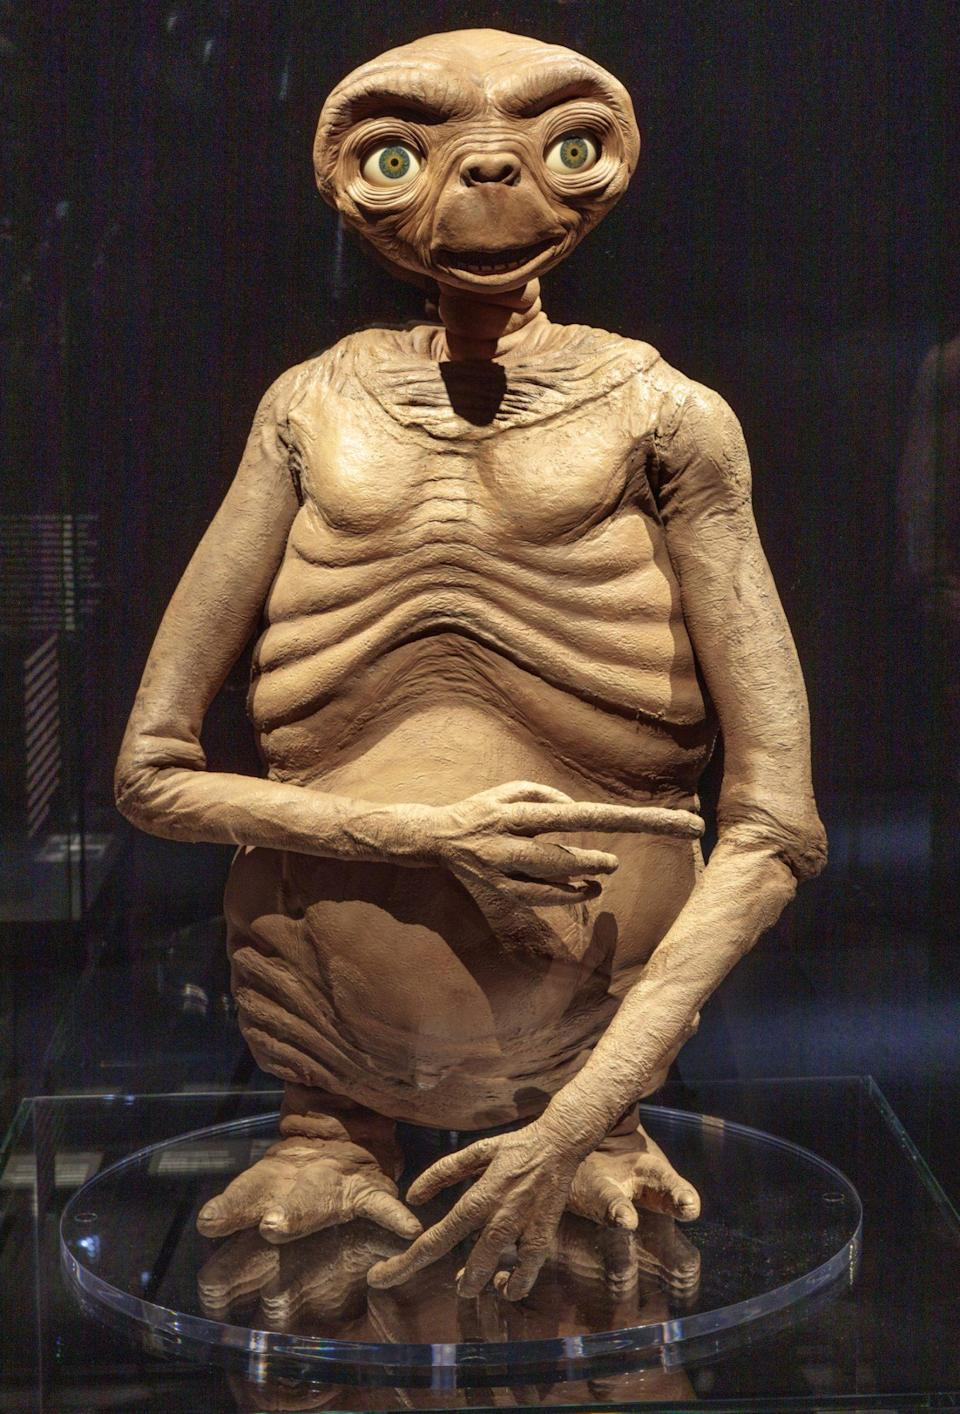 <p>You'll want to phone home after having your own encounter with E.T.</p>